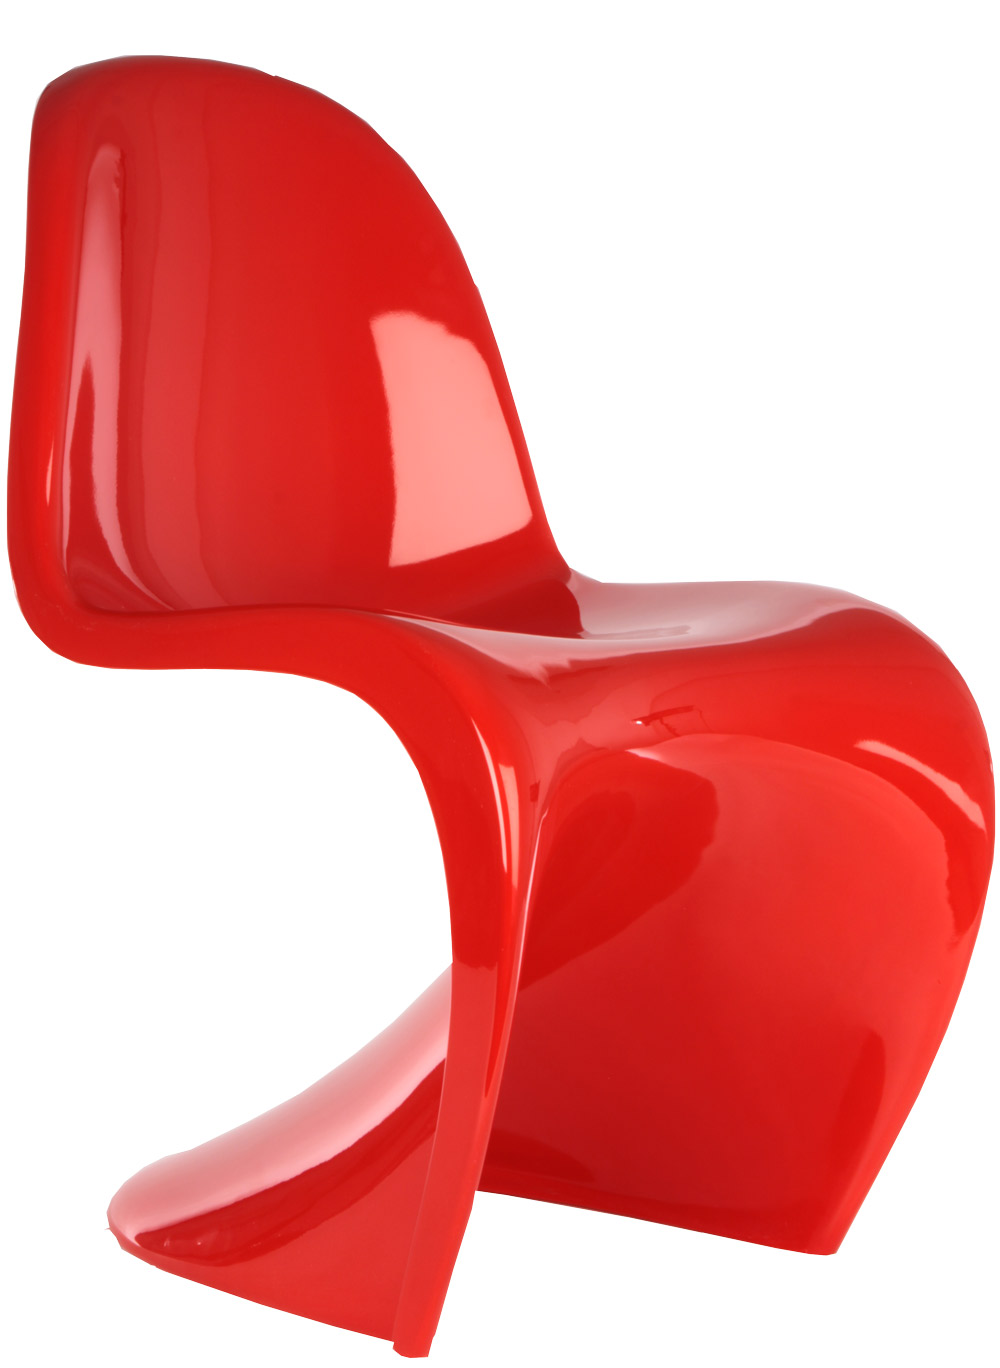 Famous Chair Panton Plastic Chair Innovative Product Designs